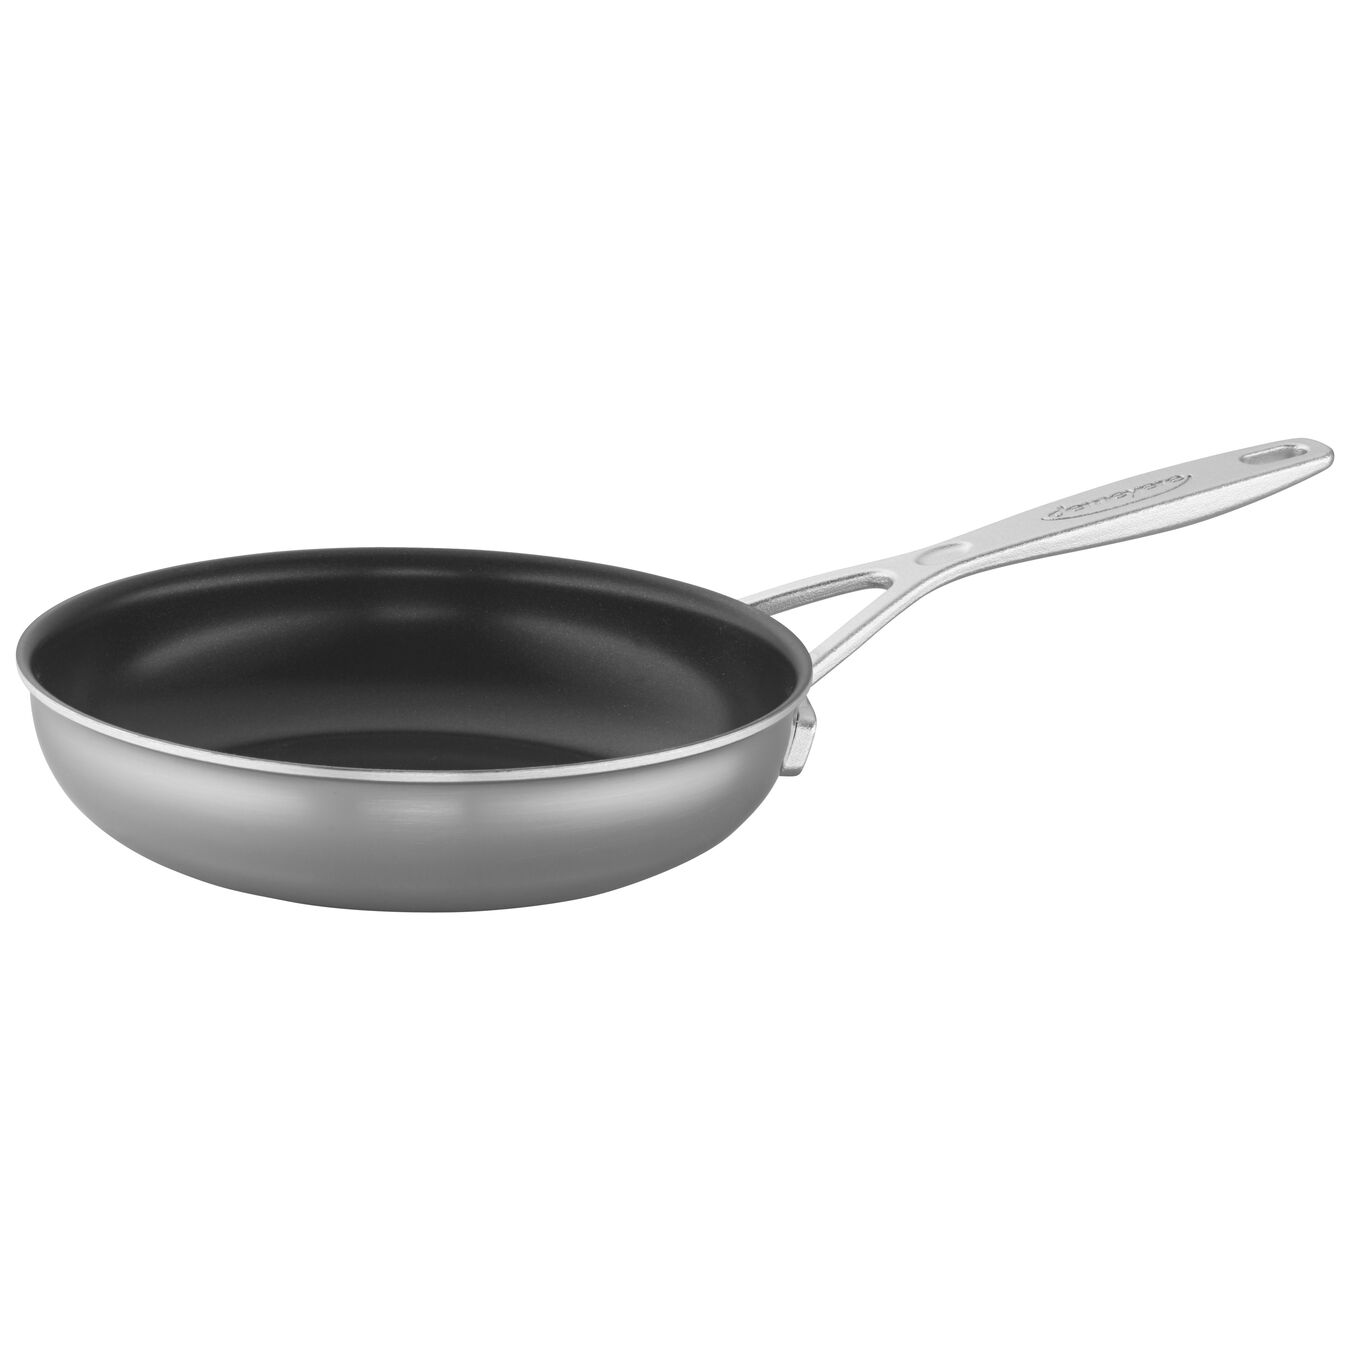 8-inch Stainless Steel Traditional Nonstick Fry Pan,,large 3